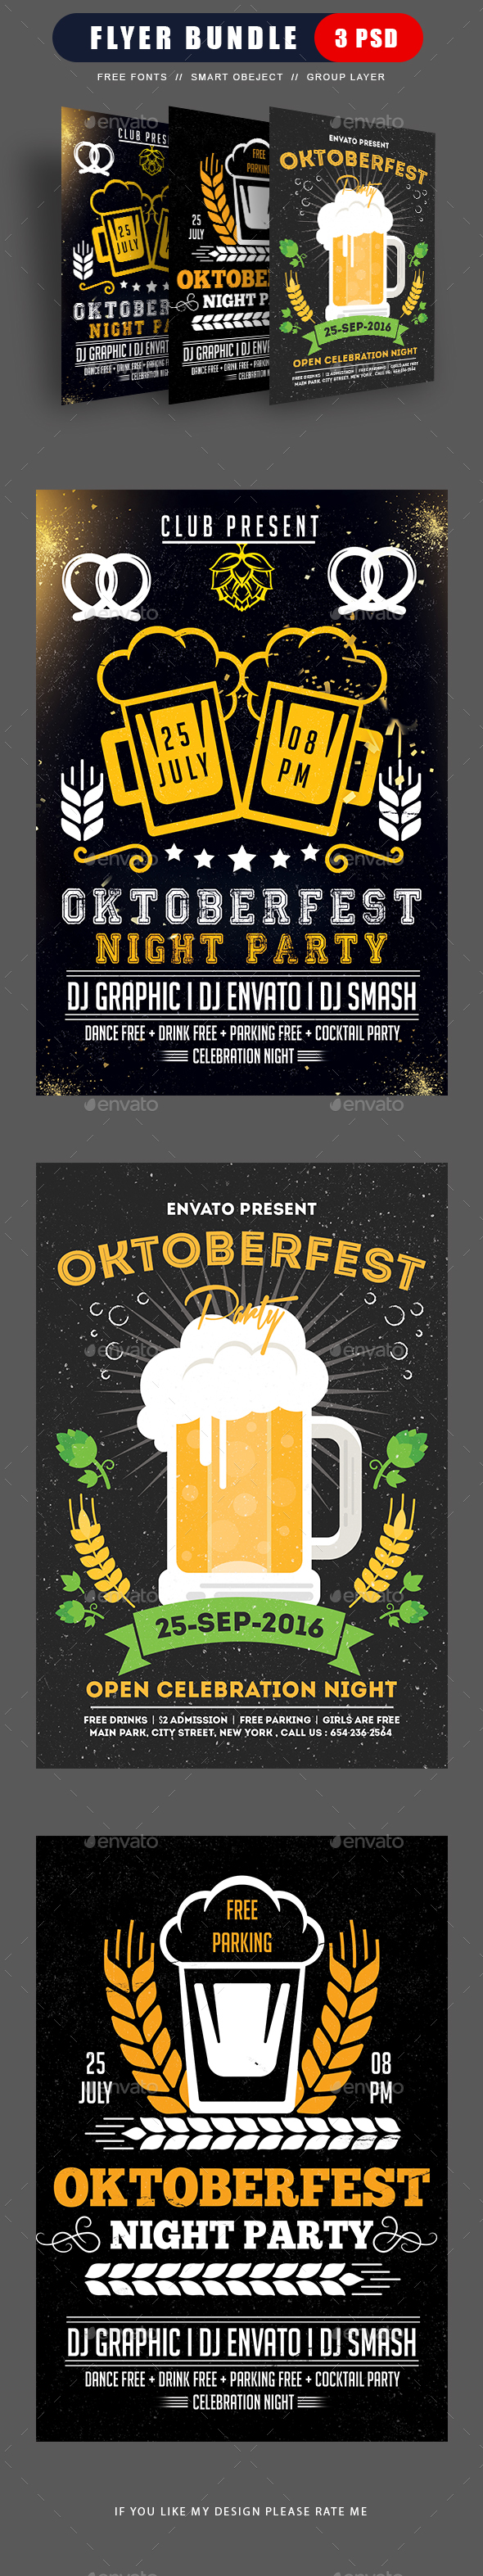 Oktoberfest Festival Flyers Bundle - Flyers Print Templates